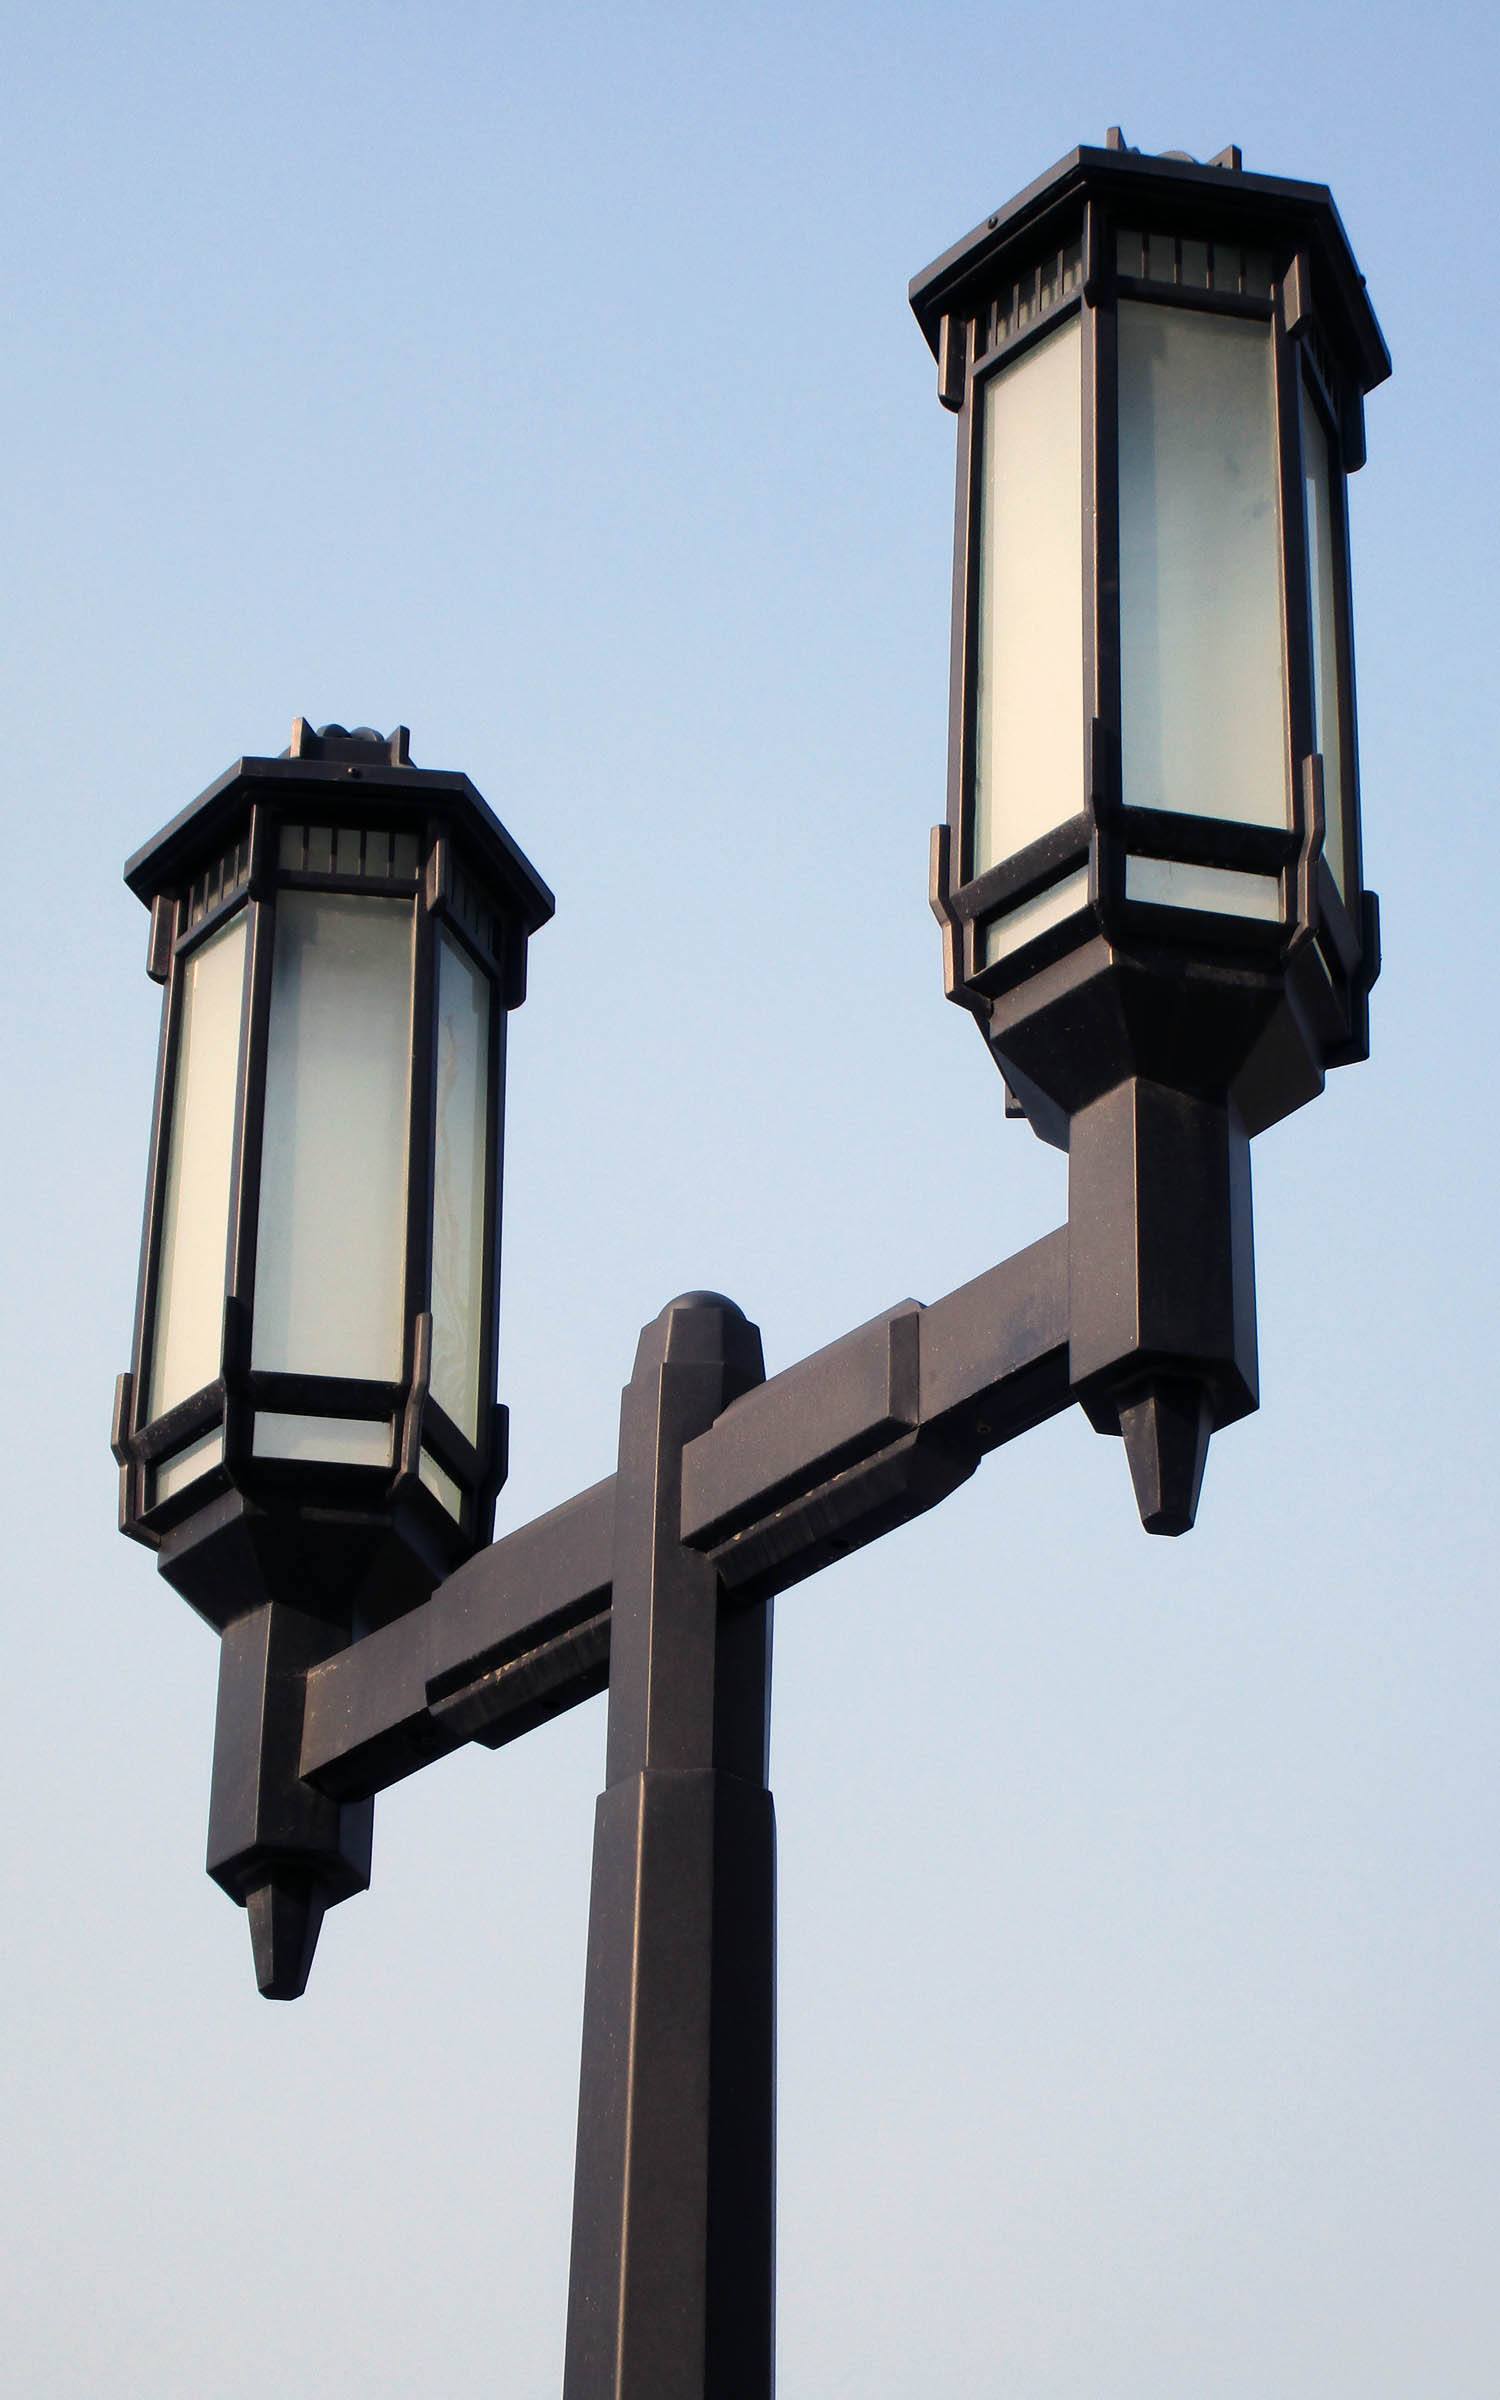 ... scales and uses including streetlights bollards wall sconces hanging lanterns path lighting and more. Design consistency and recognizable branding ... & Custom Lighting u2013 Jackson Fowler Design